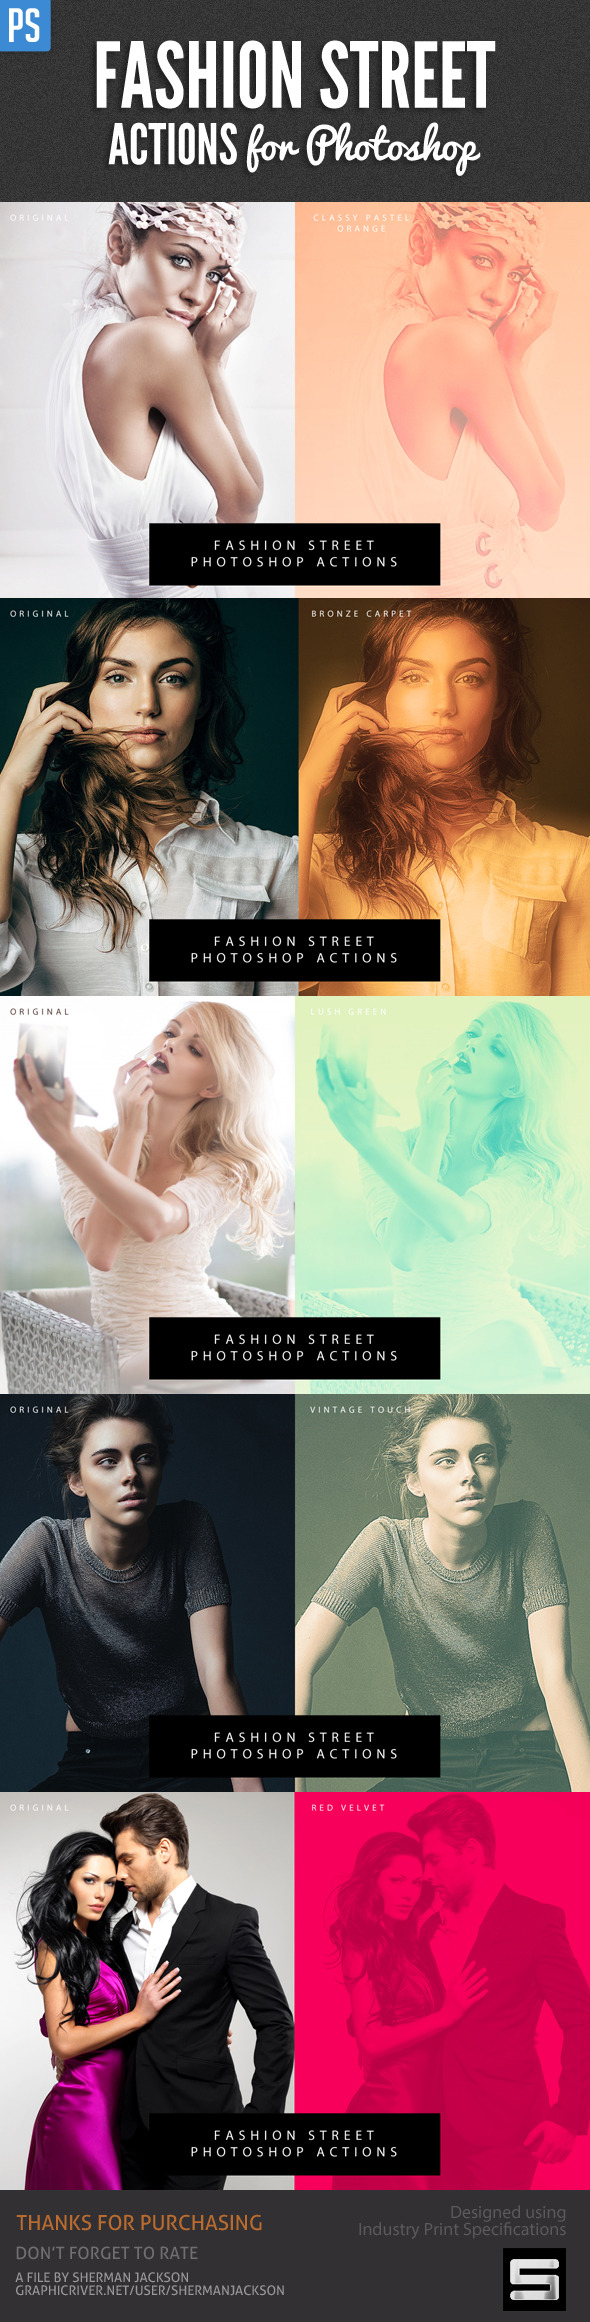 Fashion Street Actions for Photoshop - Photo Effects Actions